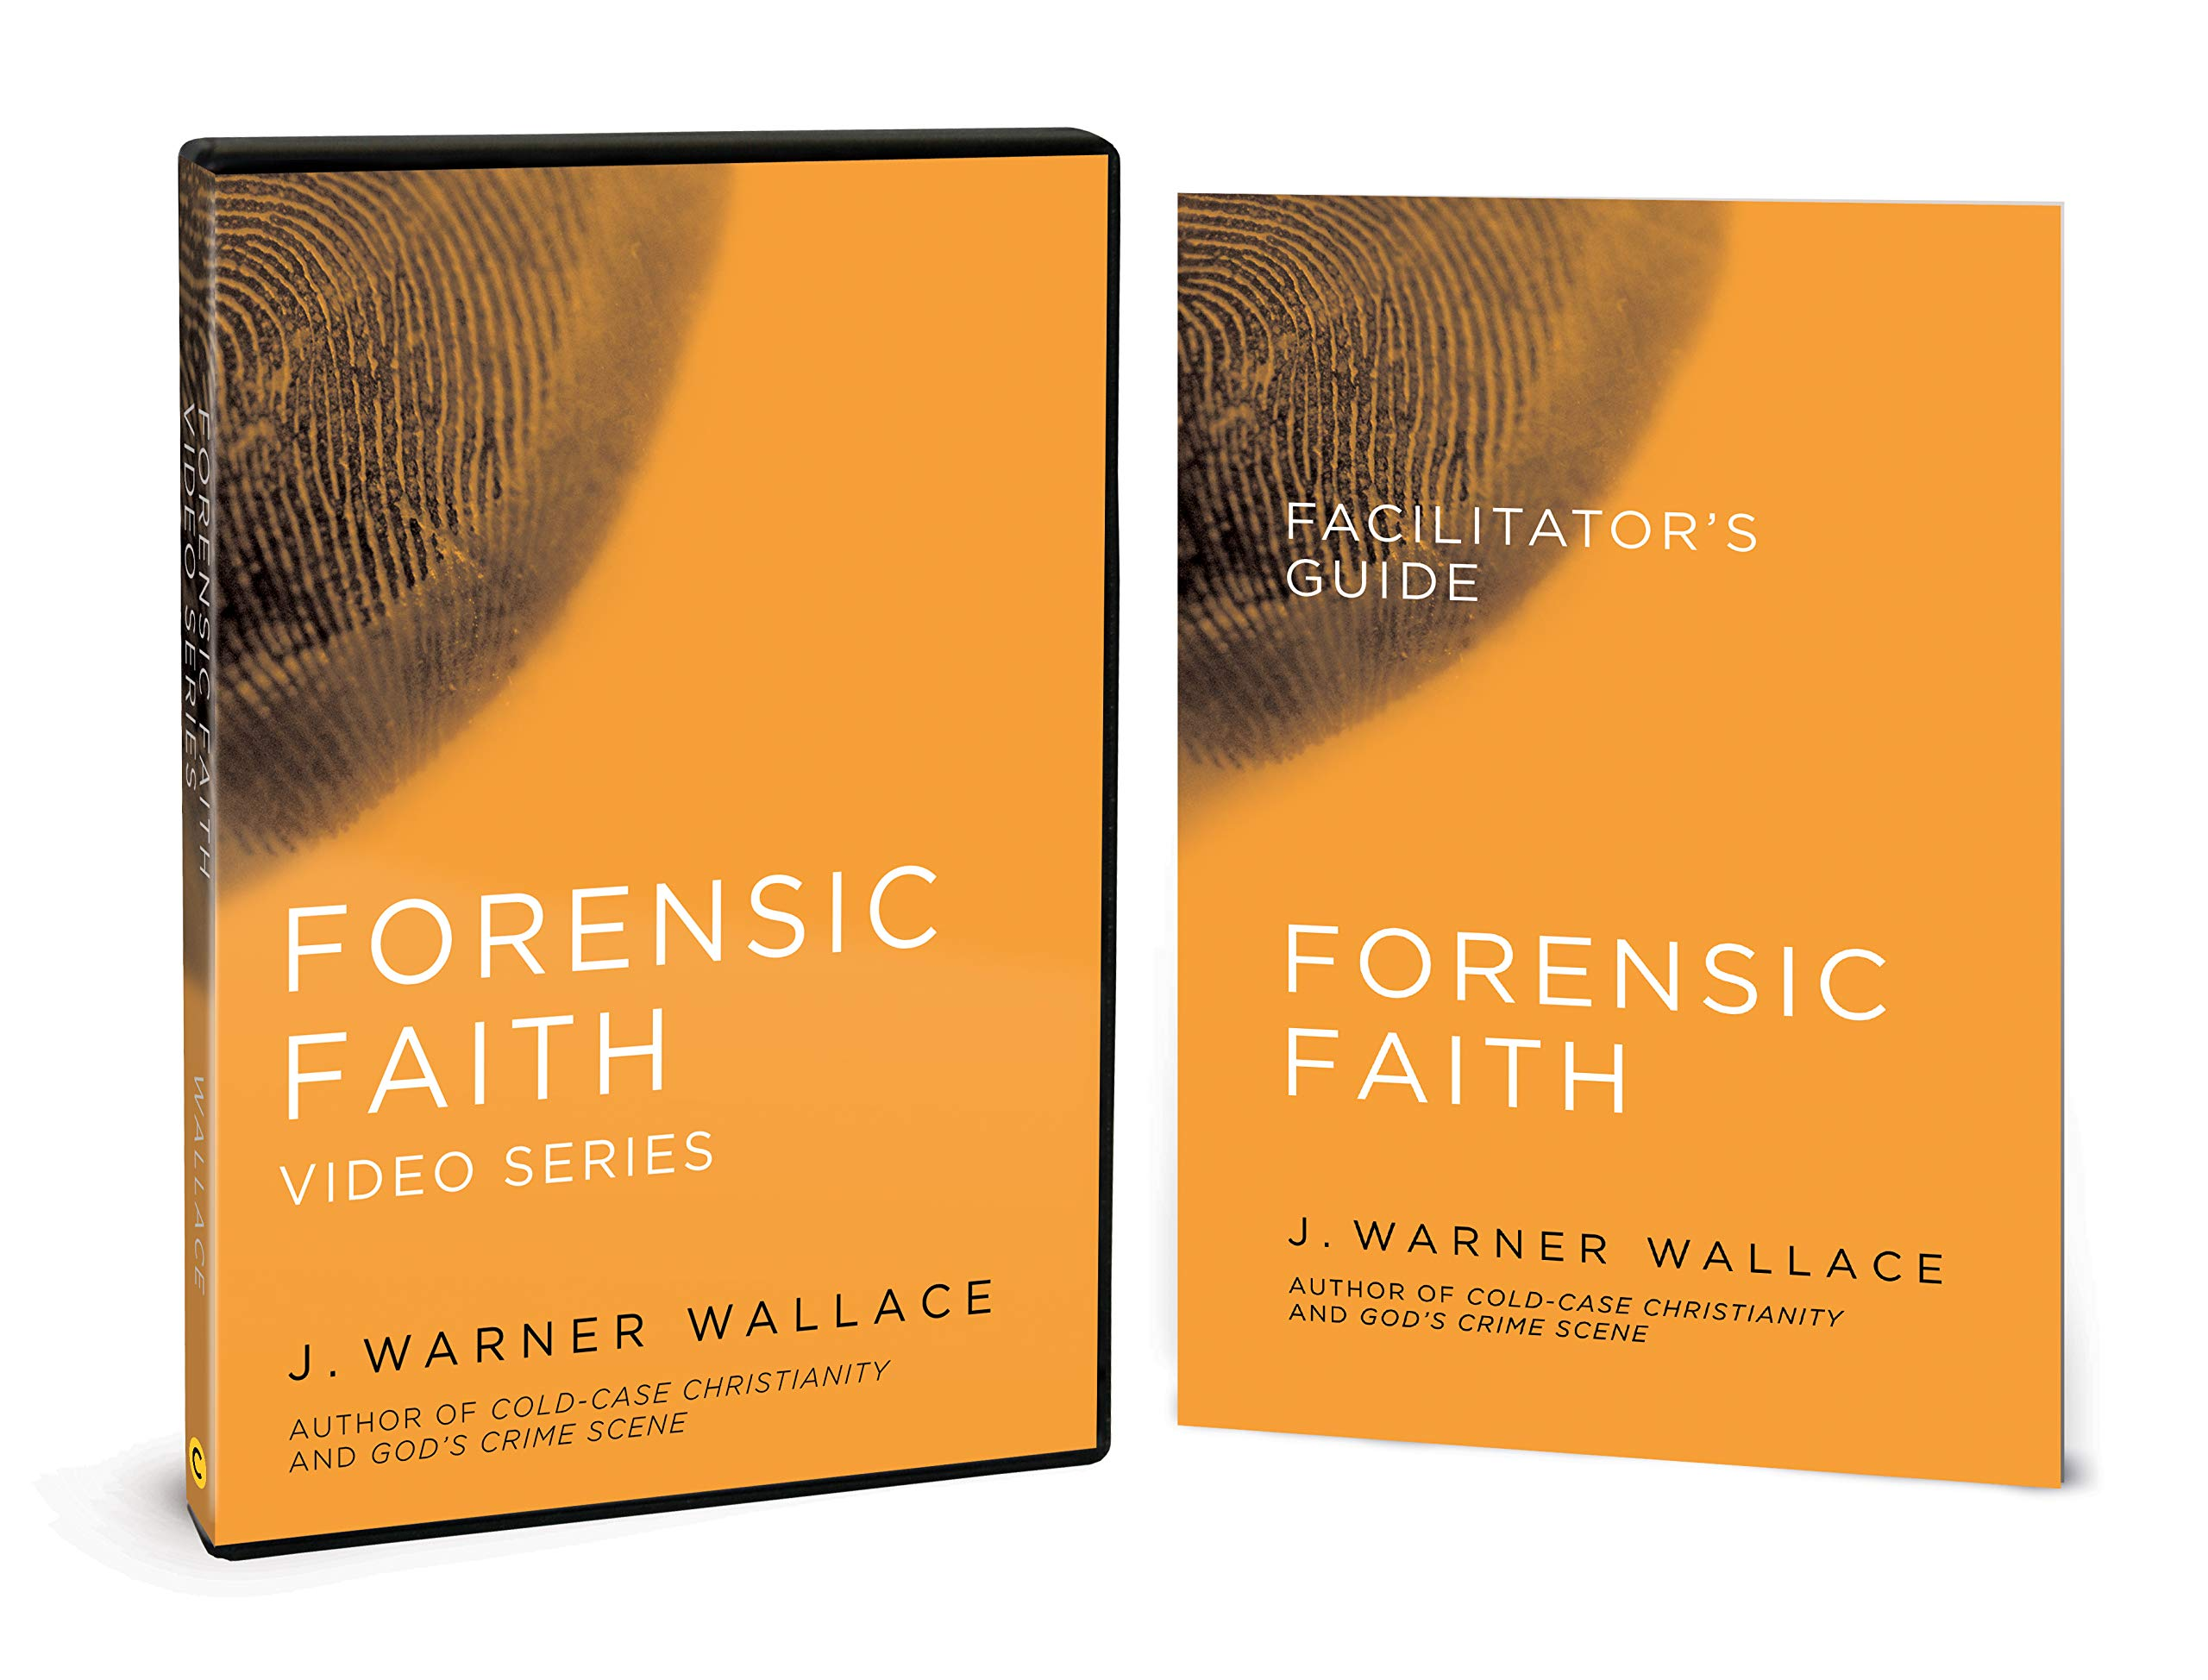 Forensic Faith Video Series With Facilitator S Guide Wallace J Warner 9780830778331 Amazon Com Books